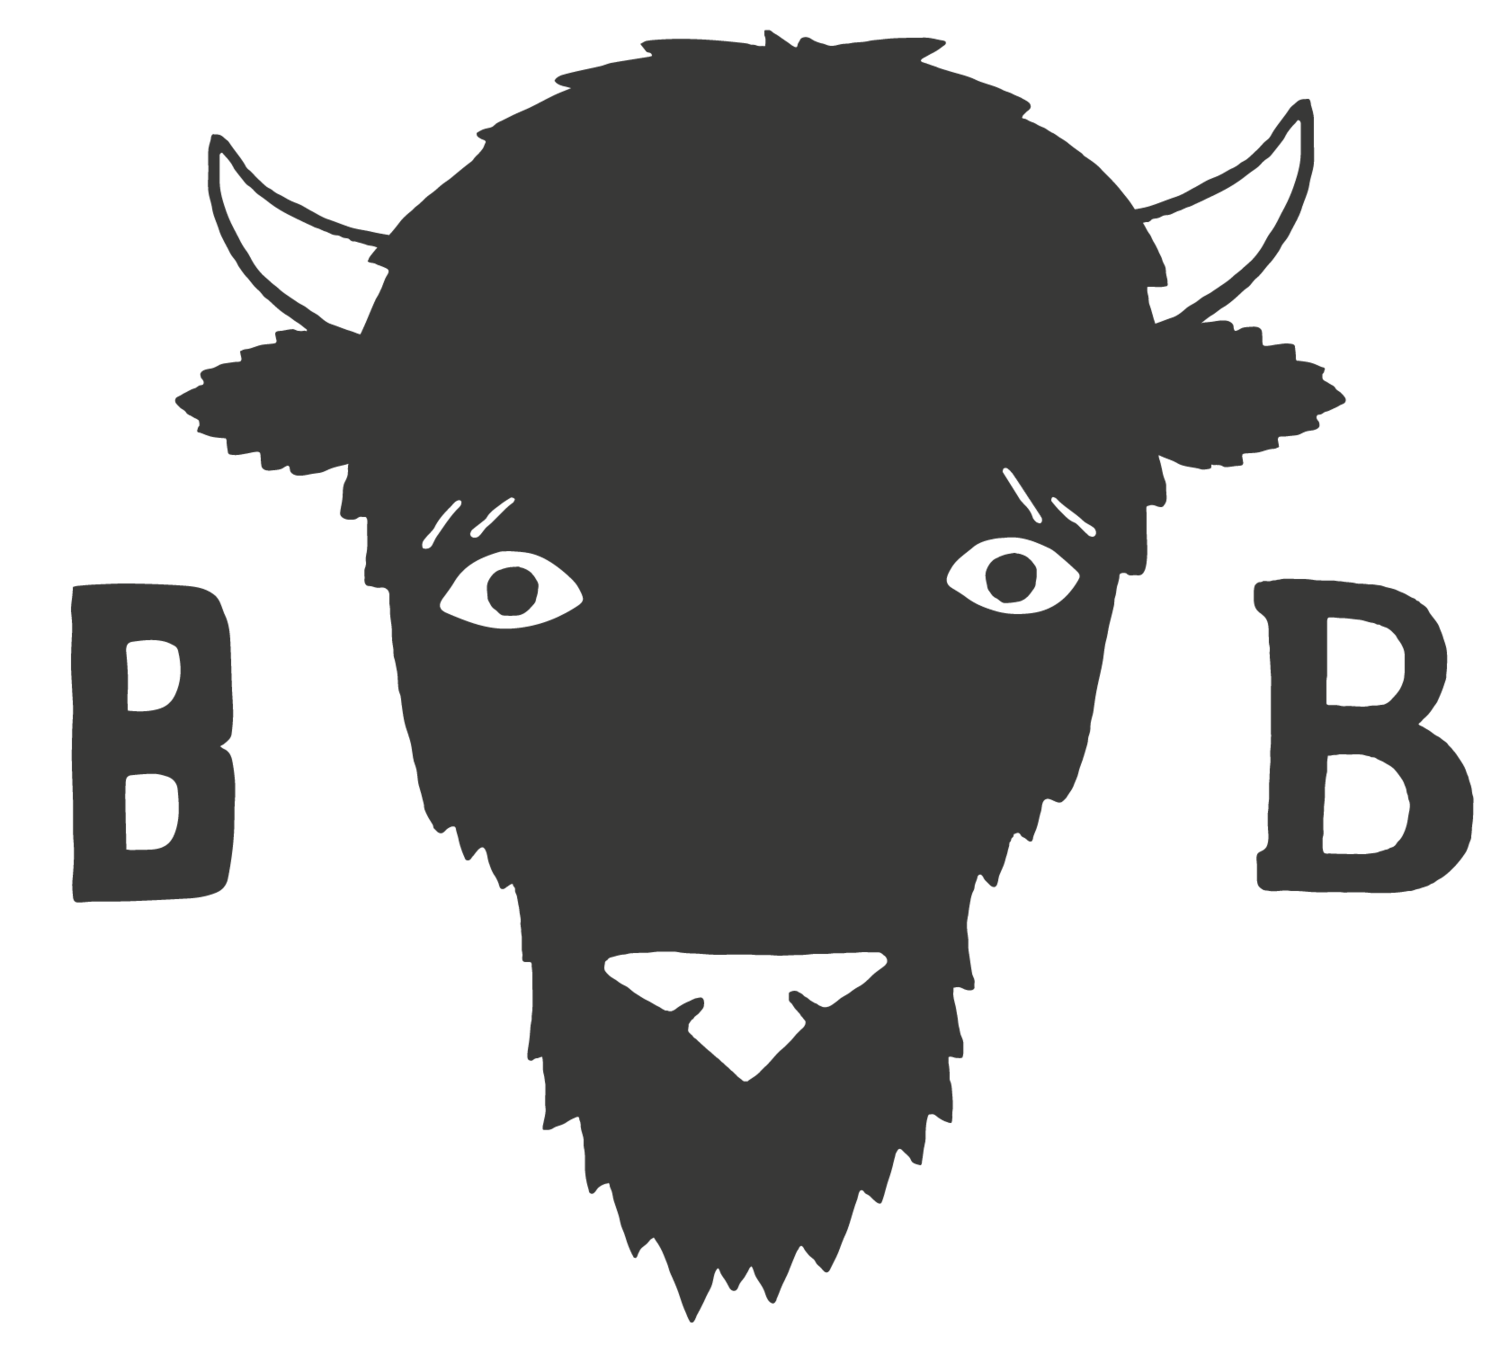 BISON BEER | Independent Craft Beer Bars & Brewing